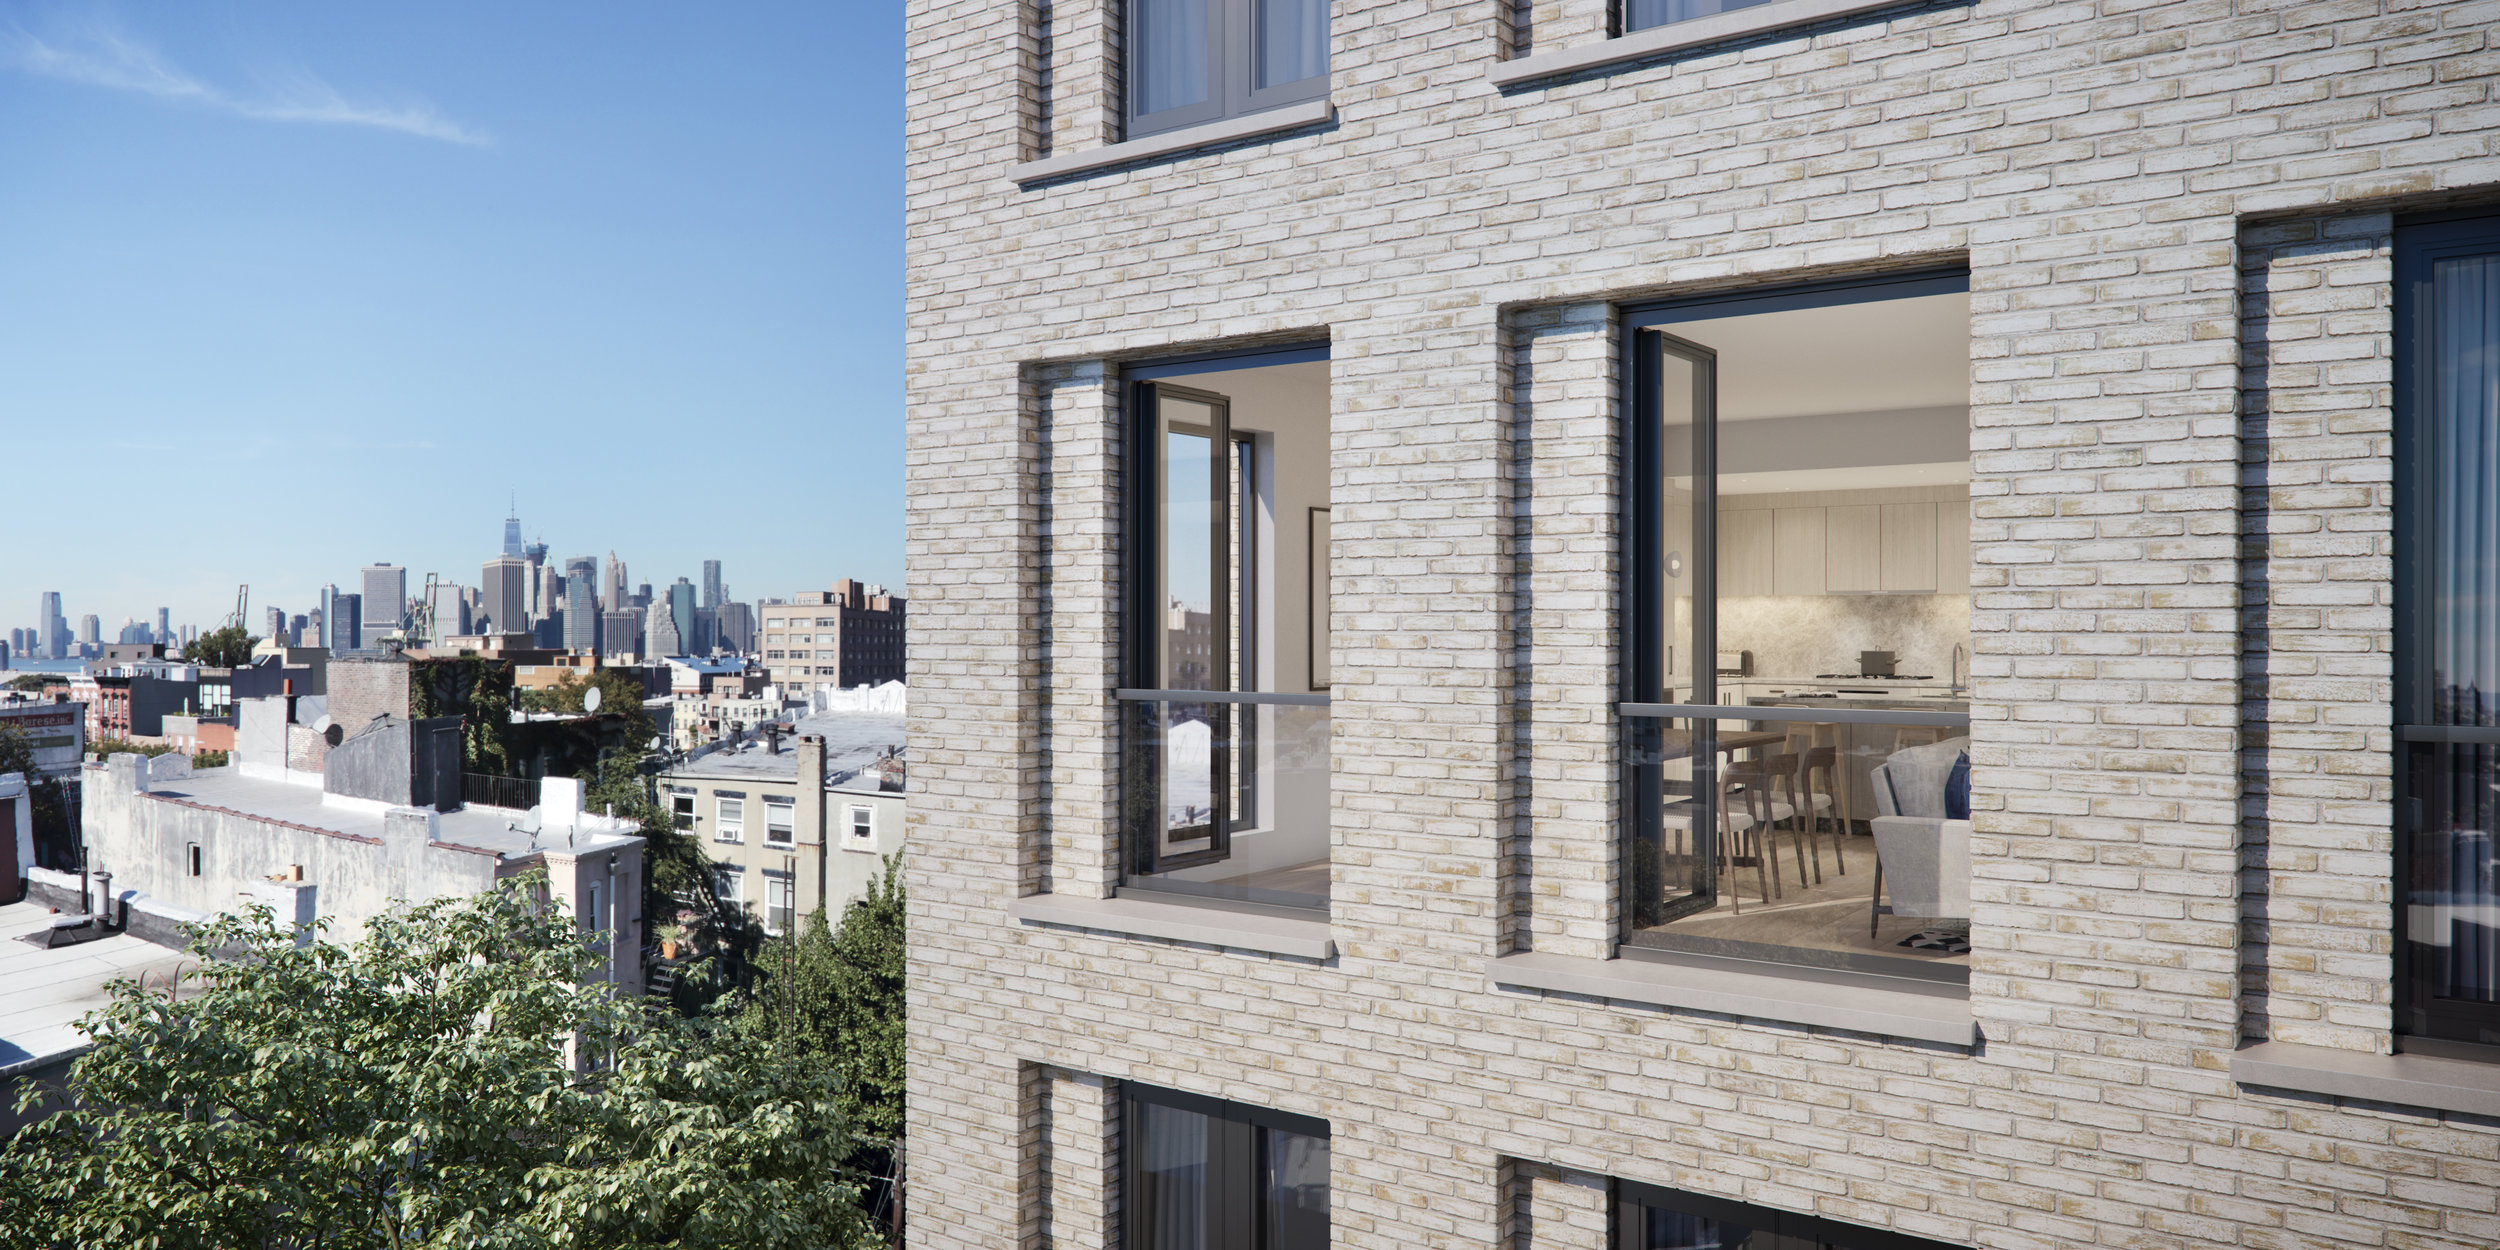 145 President, A Rare New Condo Development In Brooklyn's Carroll Gardens Launches Sales